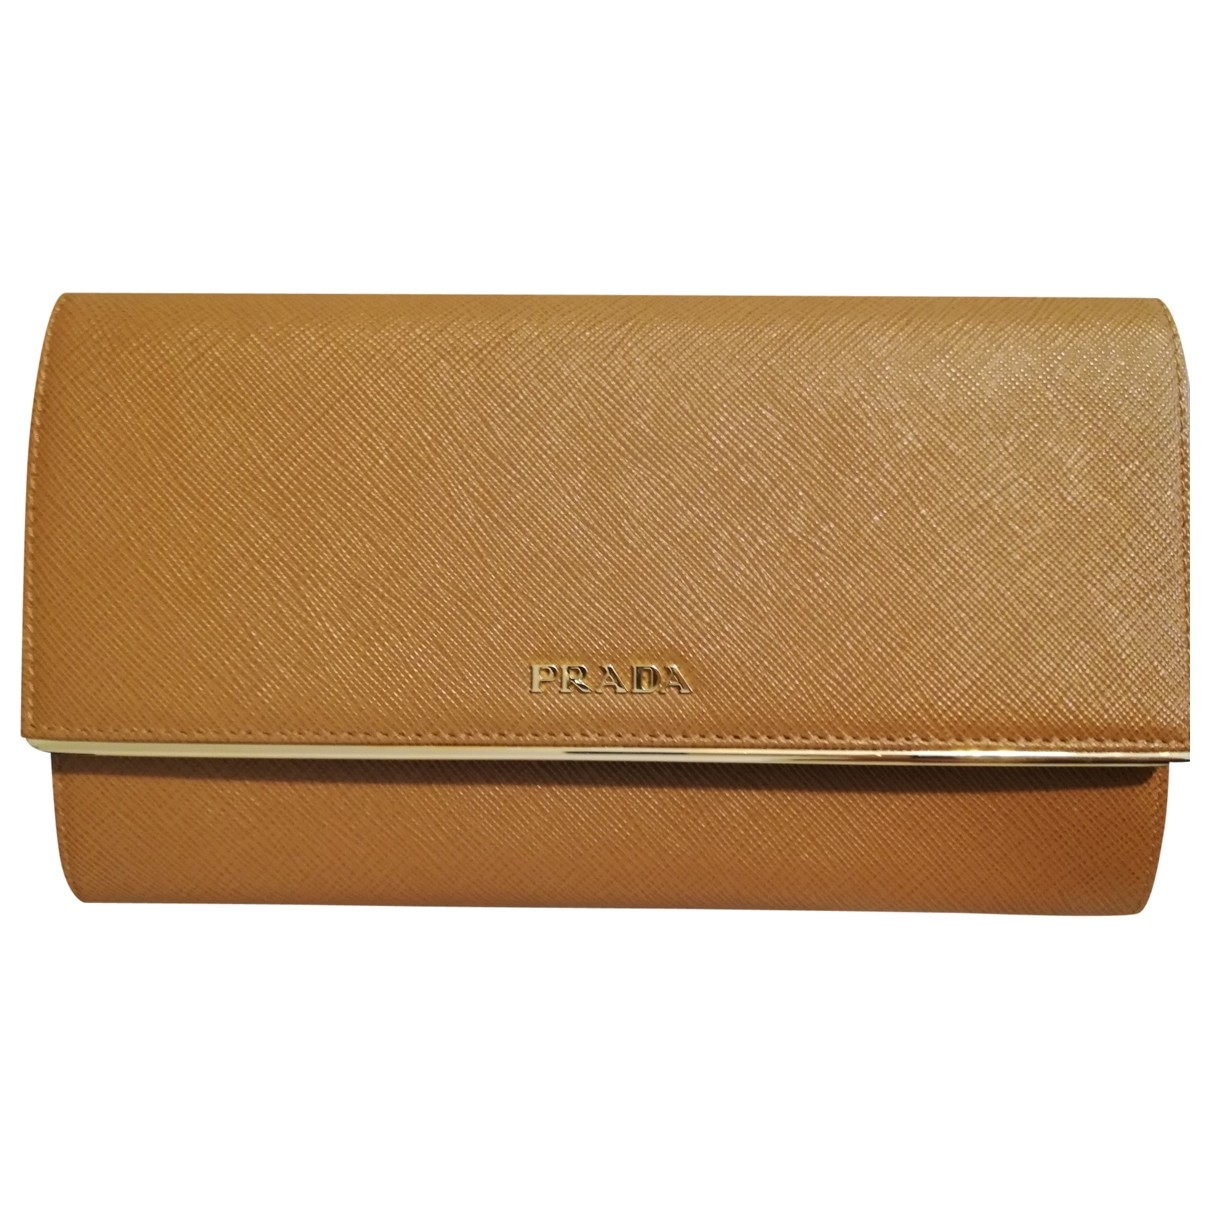 Prada \N Camel Leather wallet for Women \N